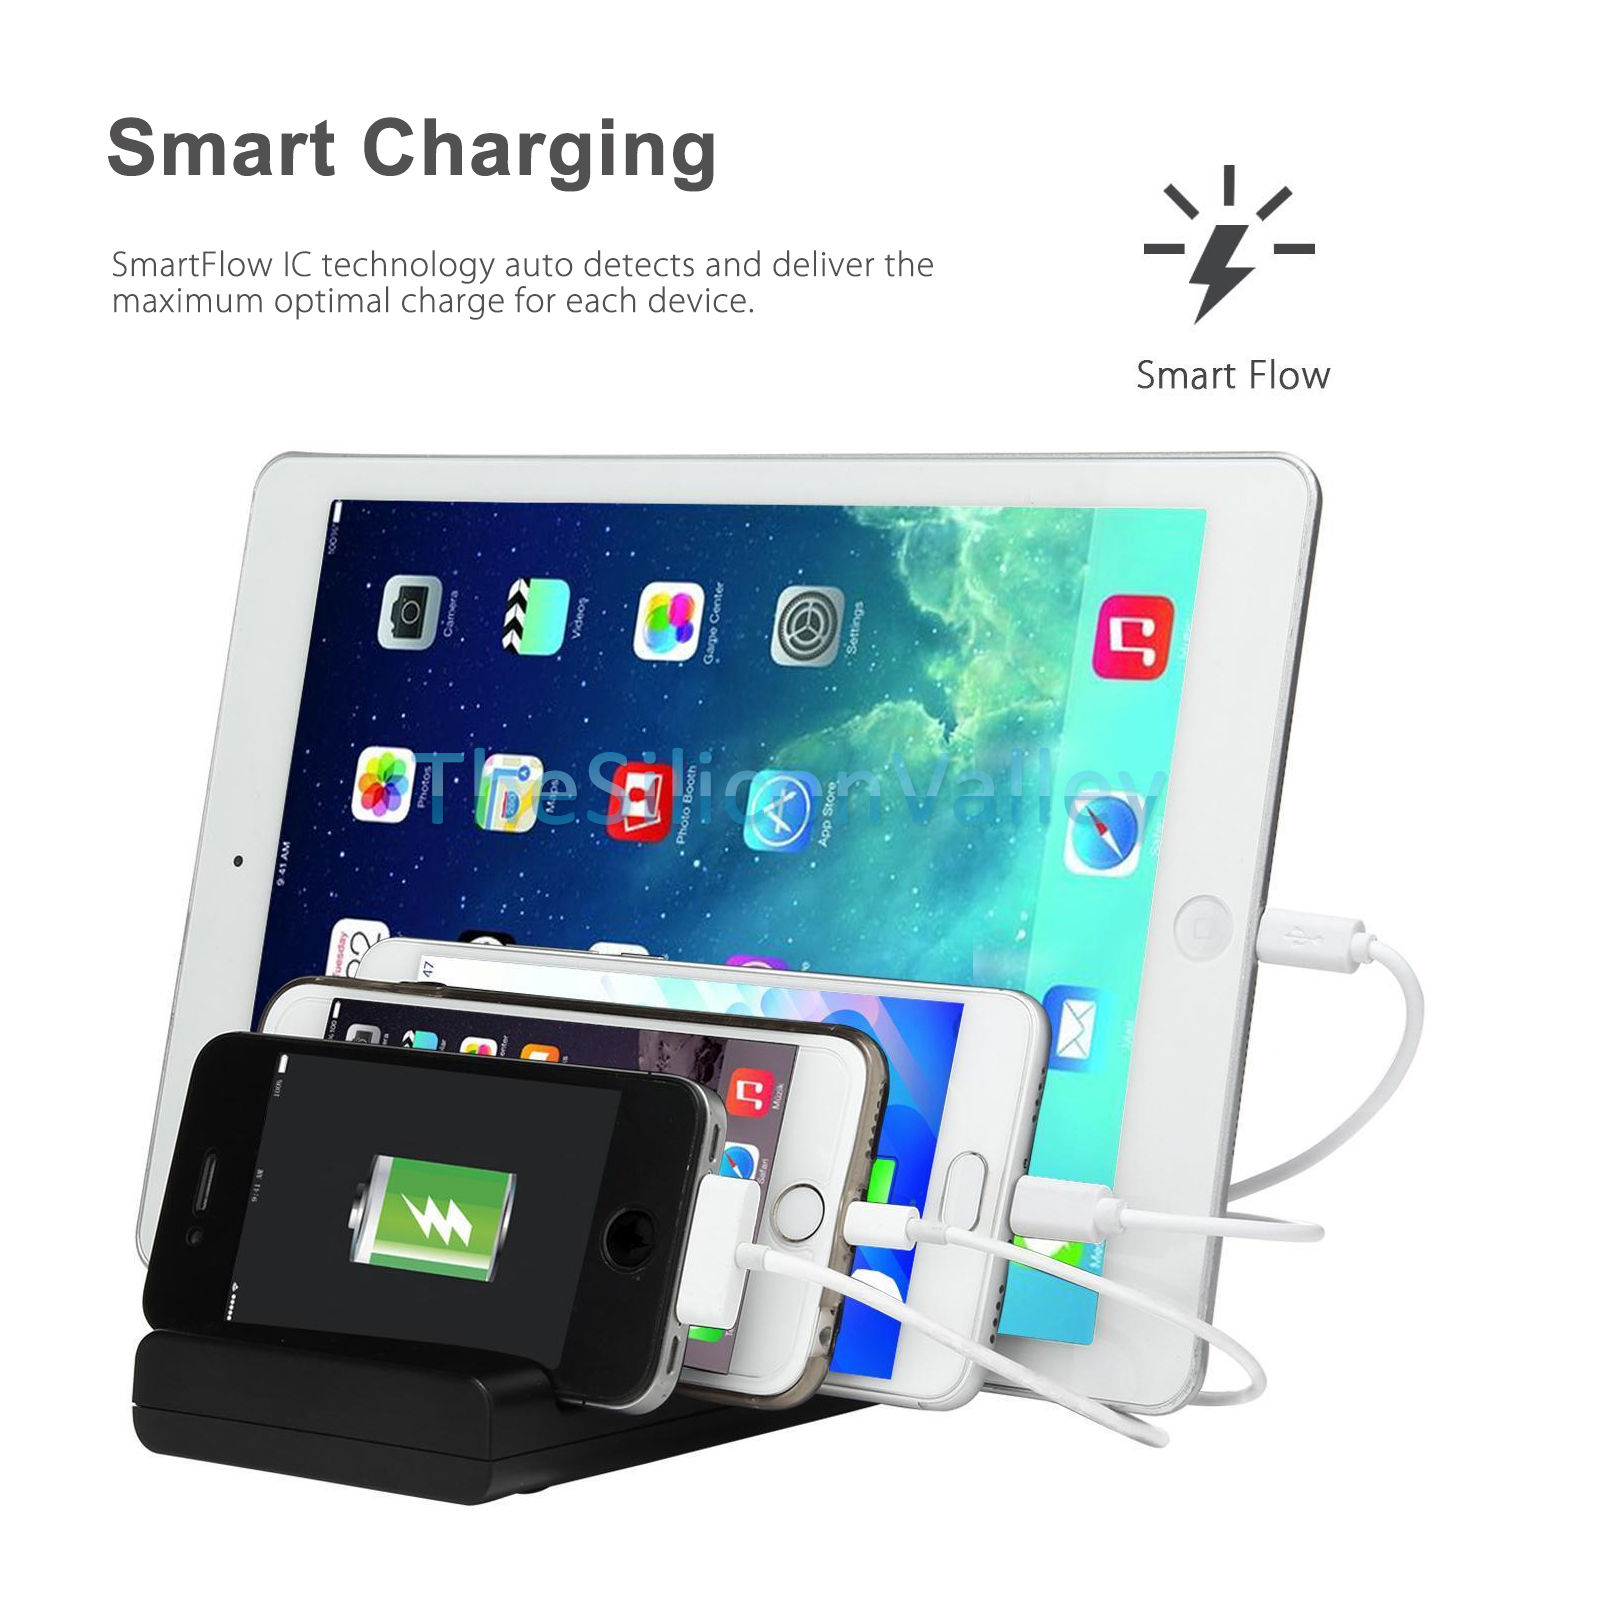 4 port usb hub charging dock station charger stand organizer tablet ipad iphone ebay. Black Bedroom Furniture Sets. Home Design Ideas